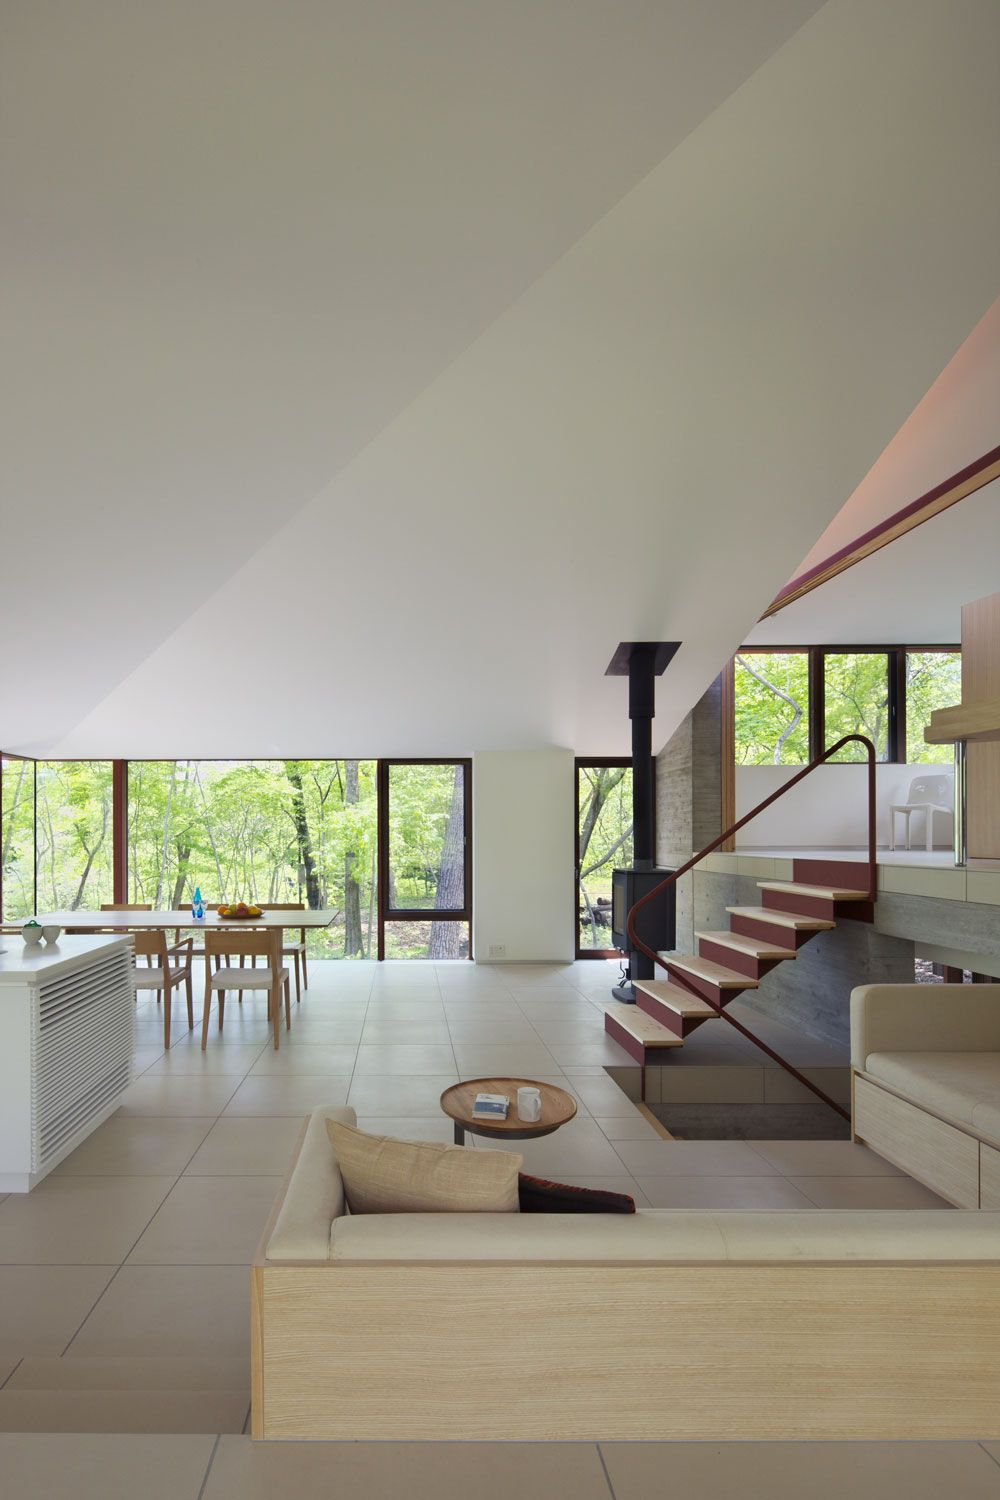 Fireplace, Open Plan Living Space, Hilltop Home in Karuizawa, Japan